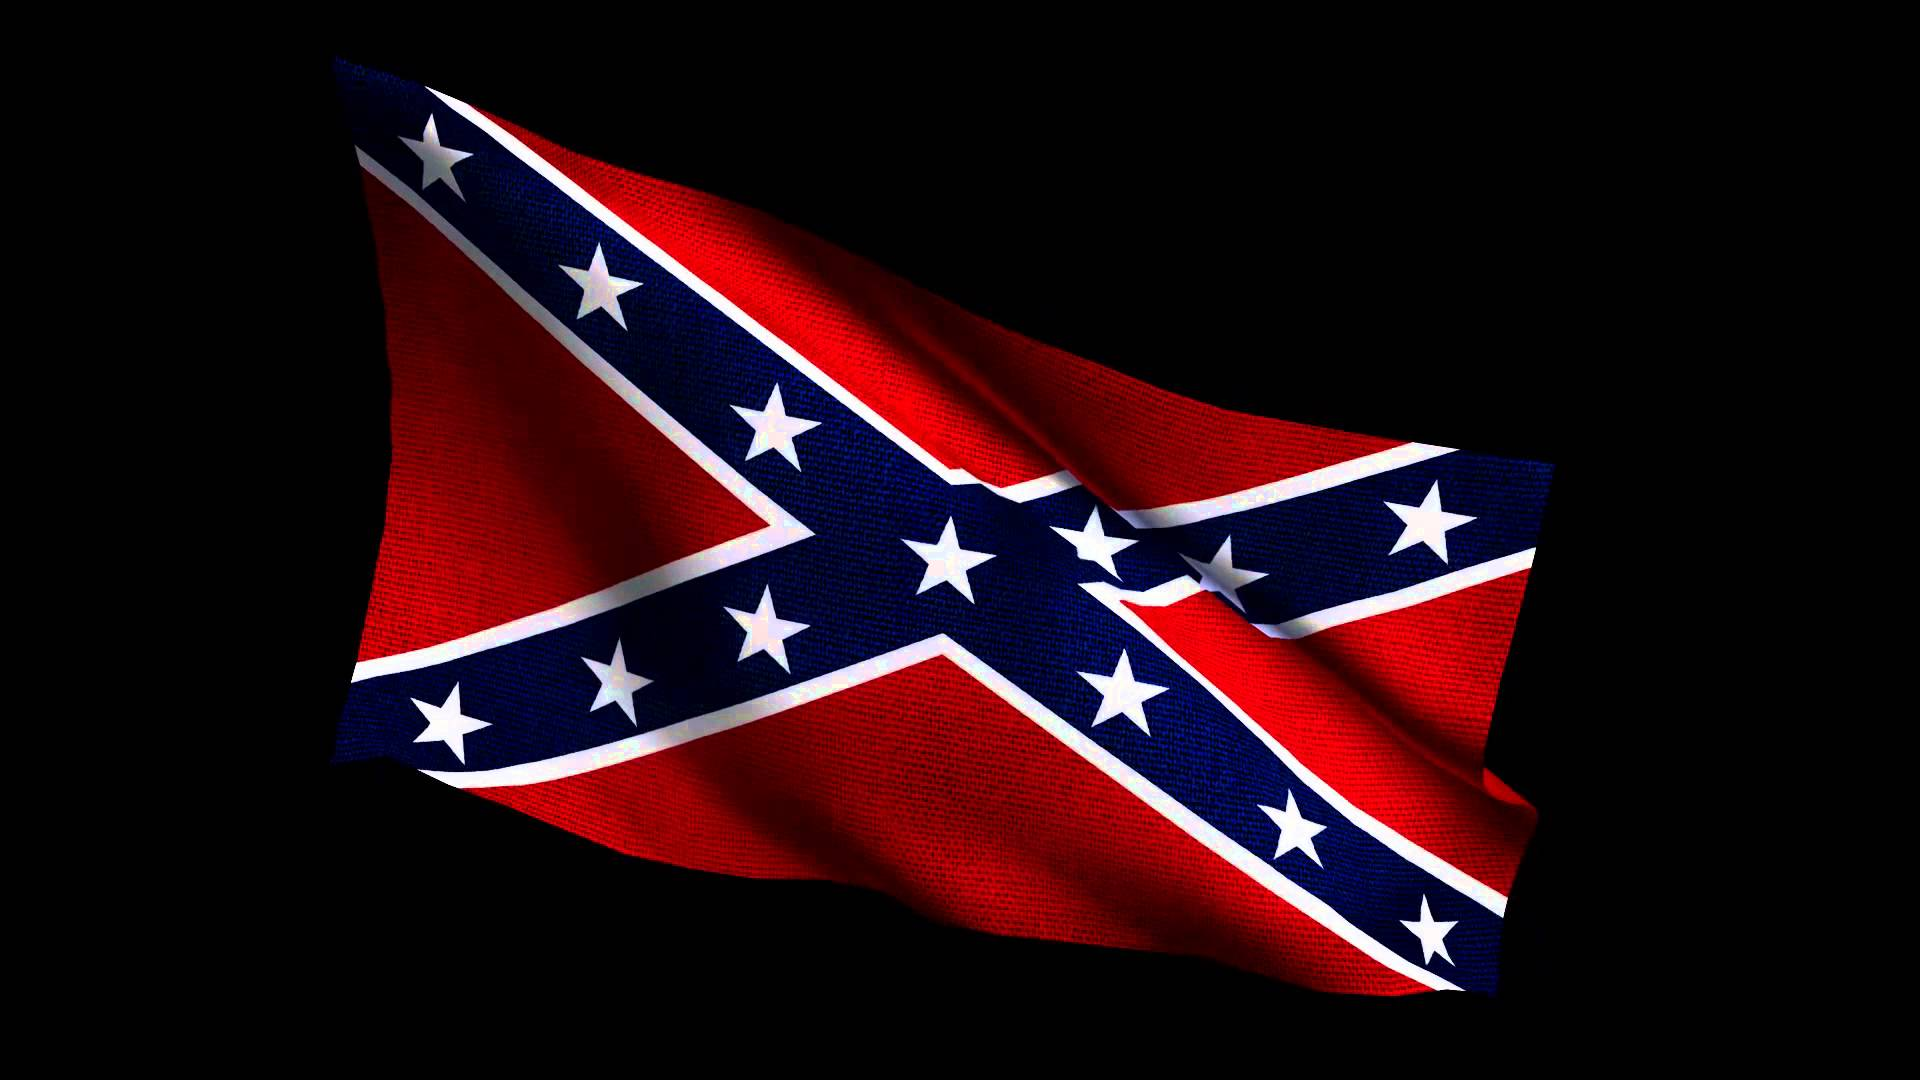 Confederate Flag waving 1920x1080p 1920x1080